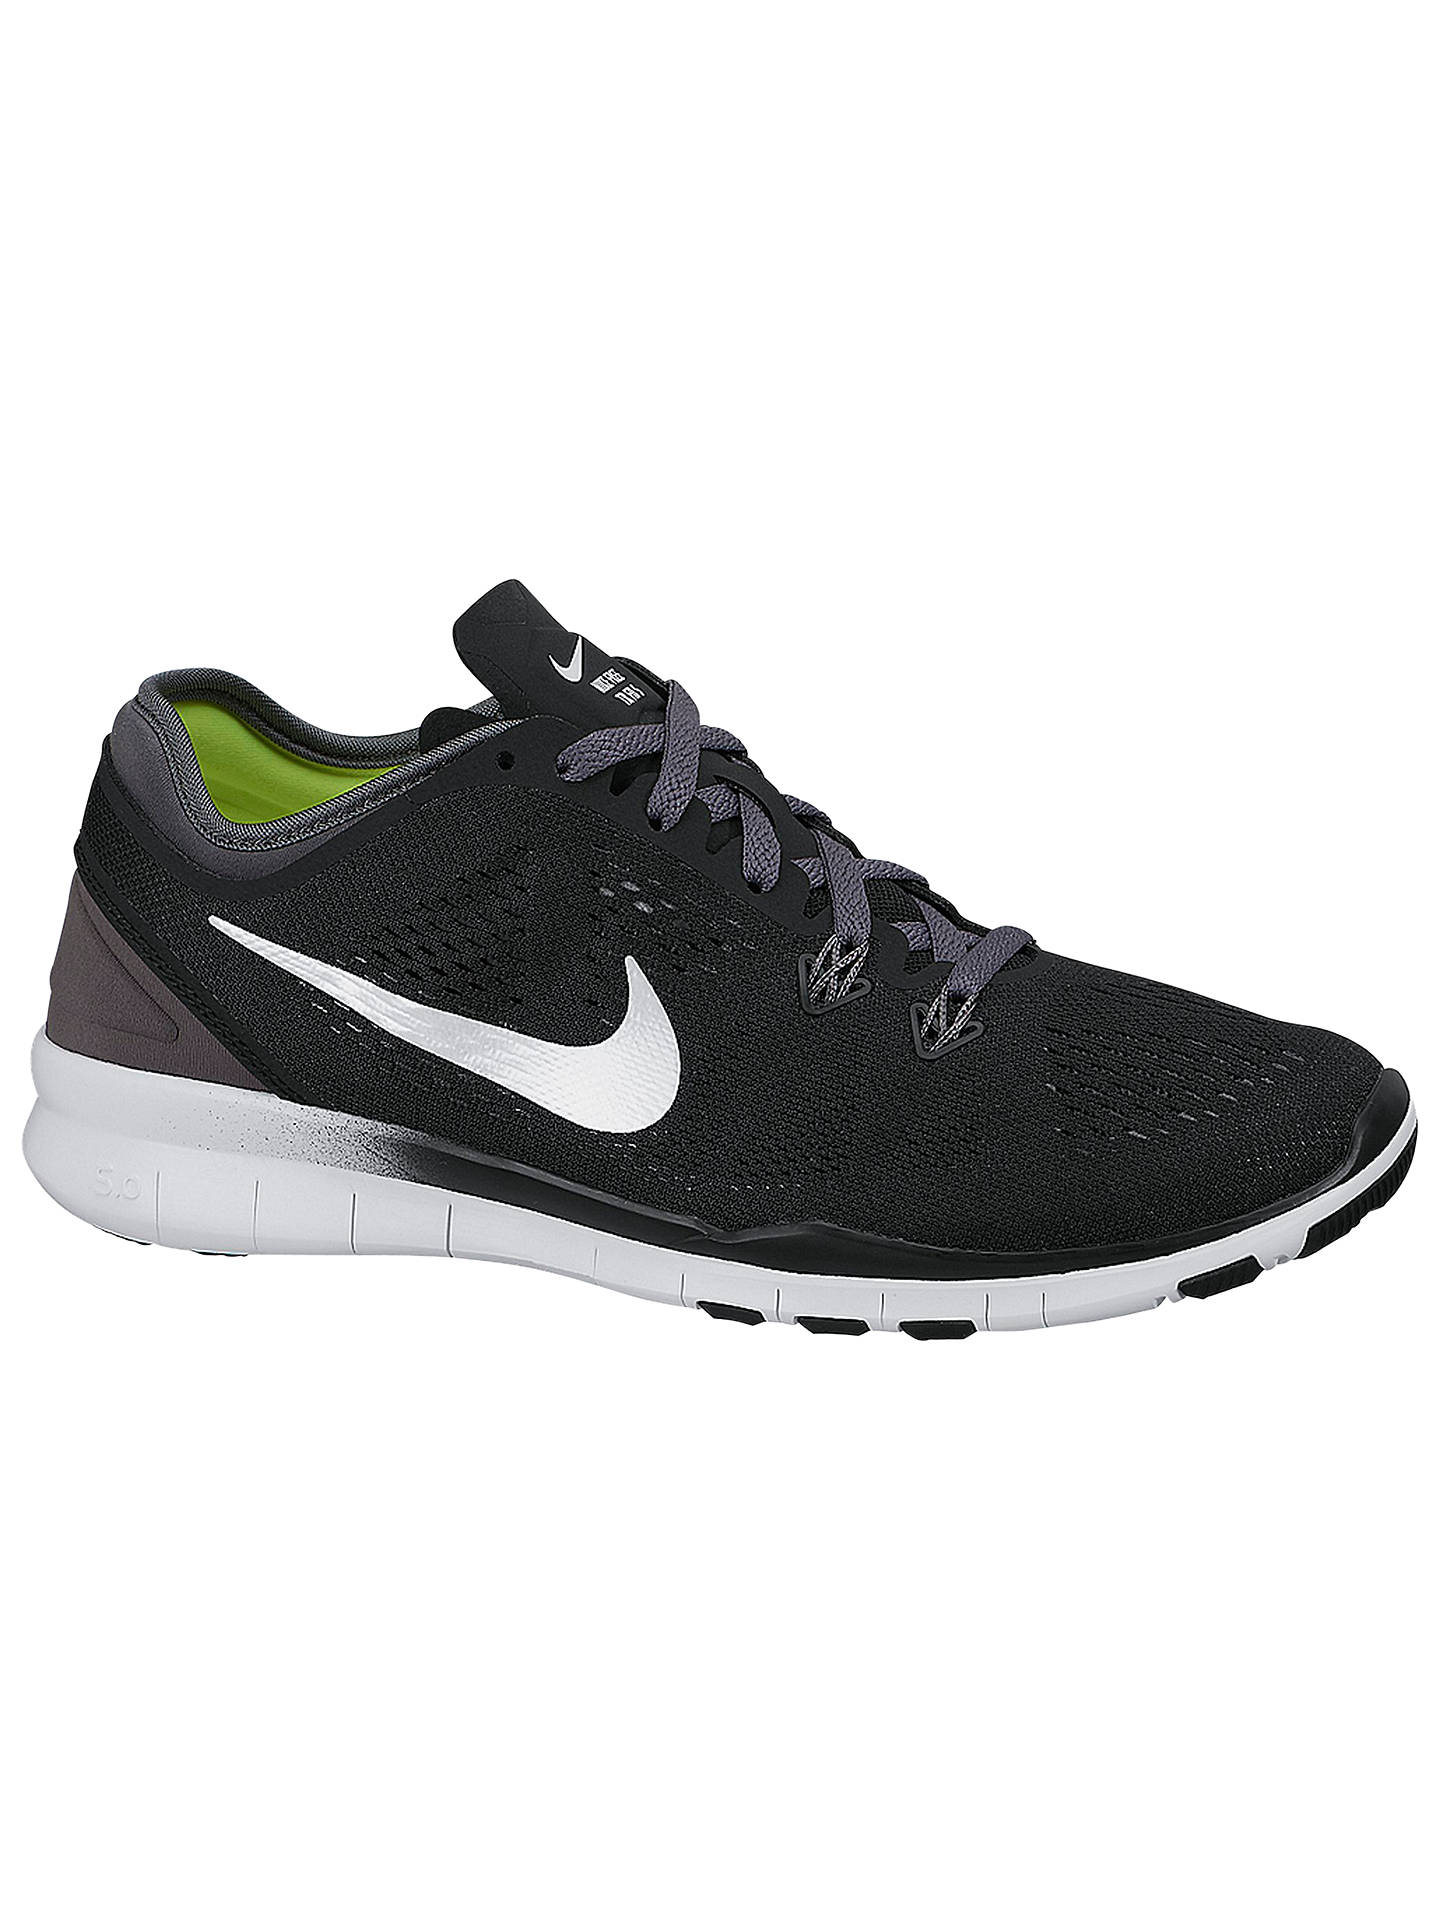 buy online 73e33 5beff Nike Free TR Fit 5 Women's Cross Trainers at John Lewis ...